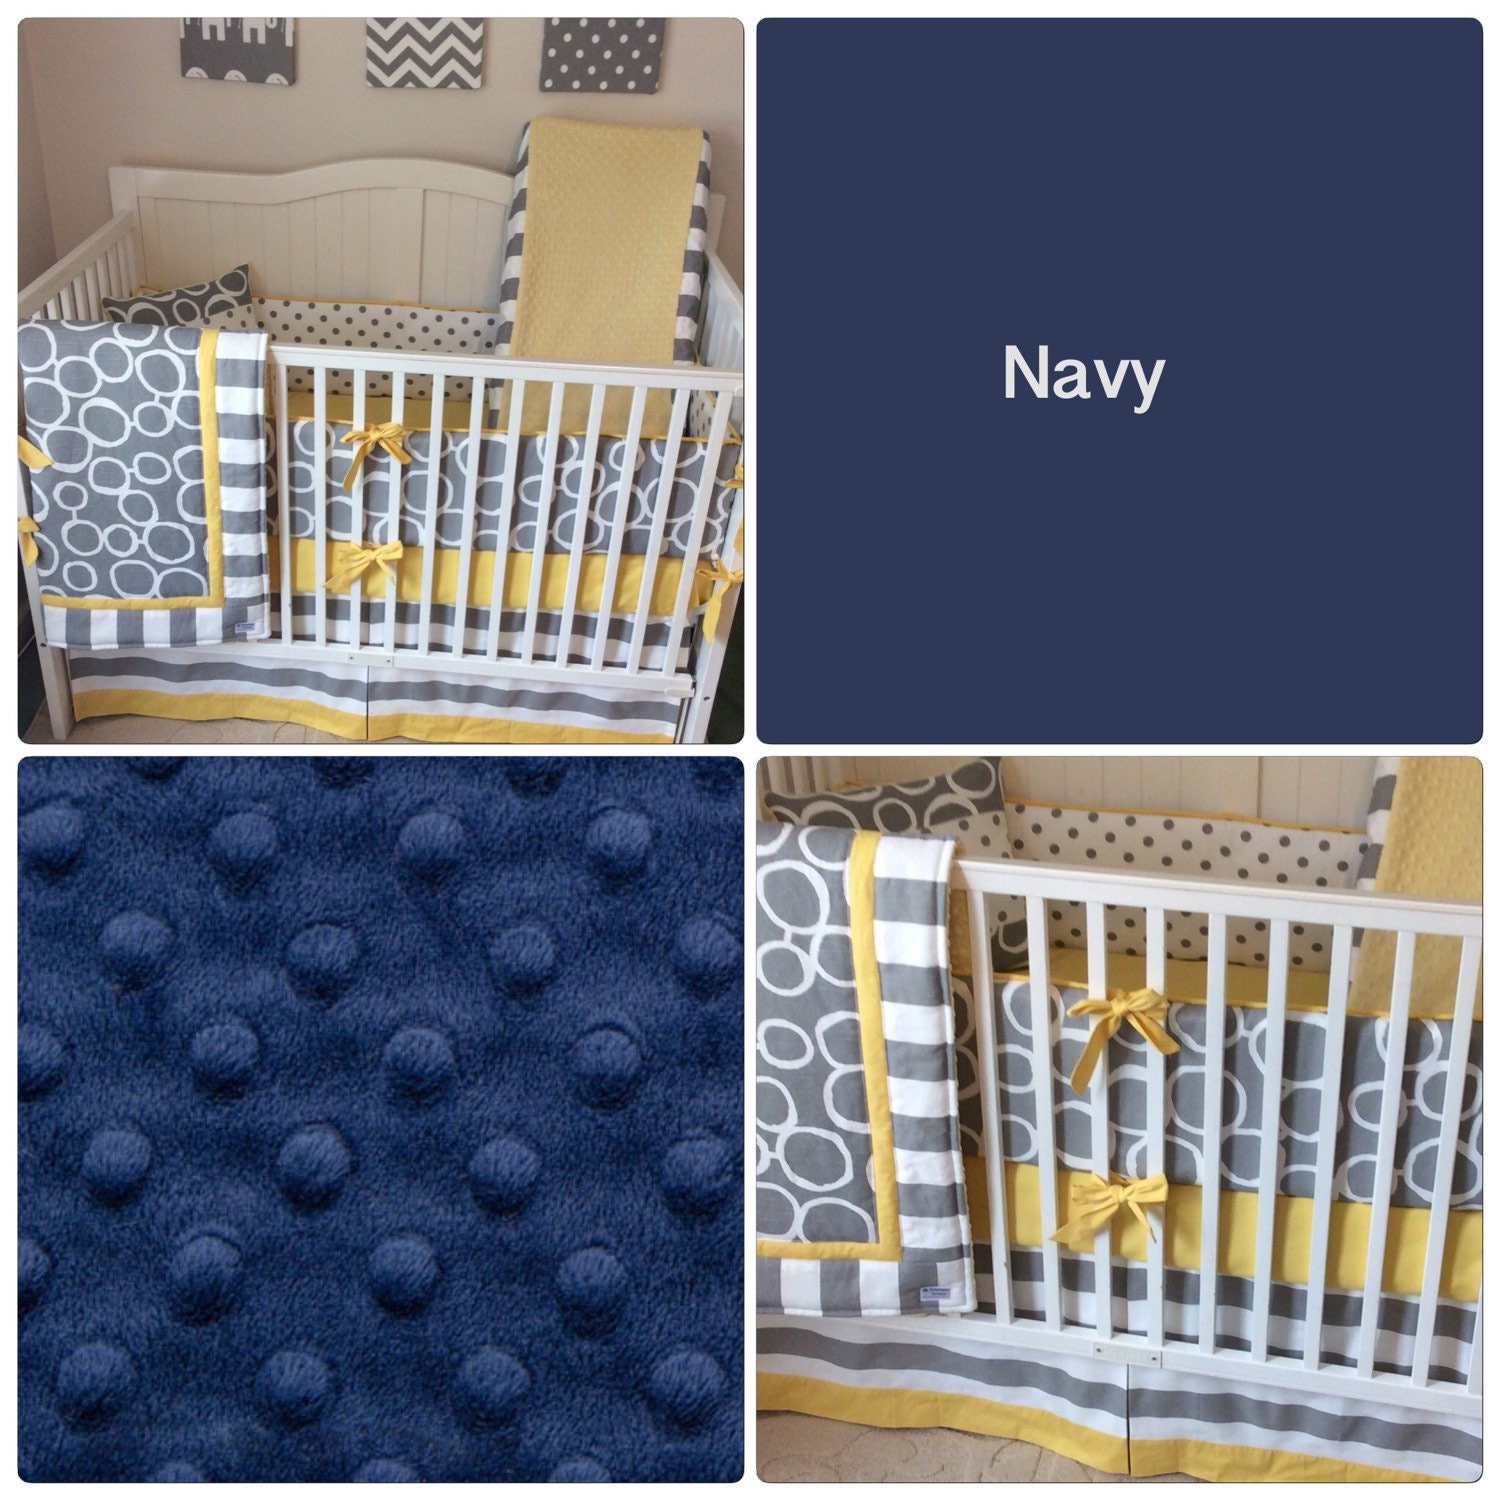 Crib bedding set gray white navy blue with by butterbeansboutique - Crib Bedding Set Gray White Navy Blue